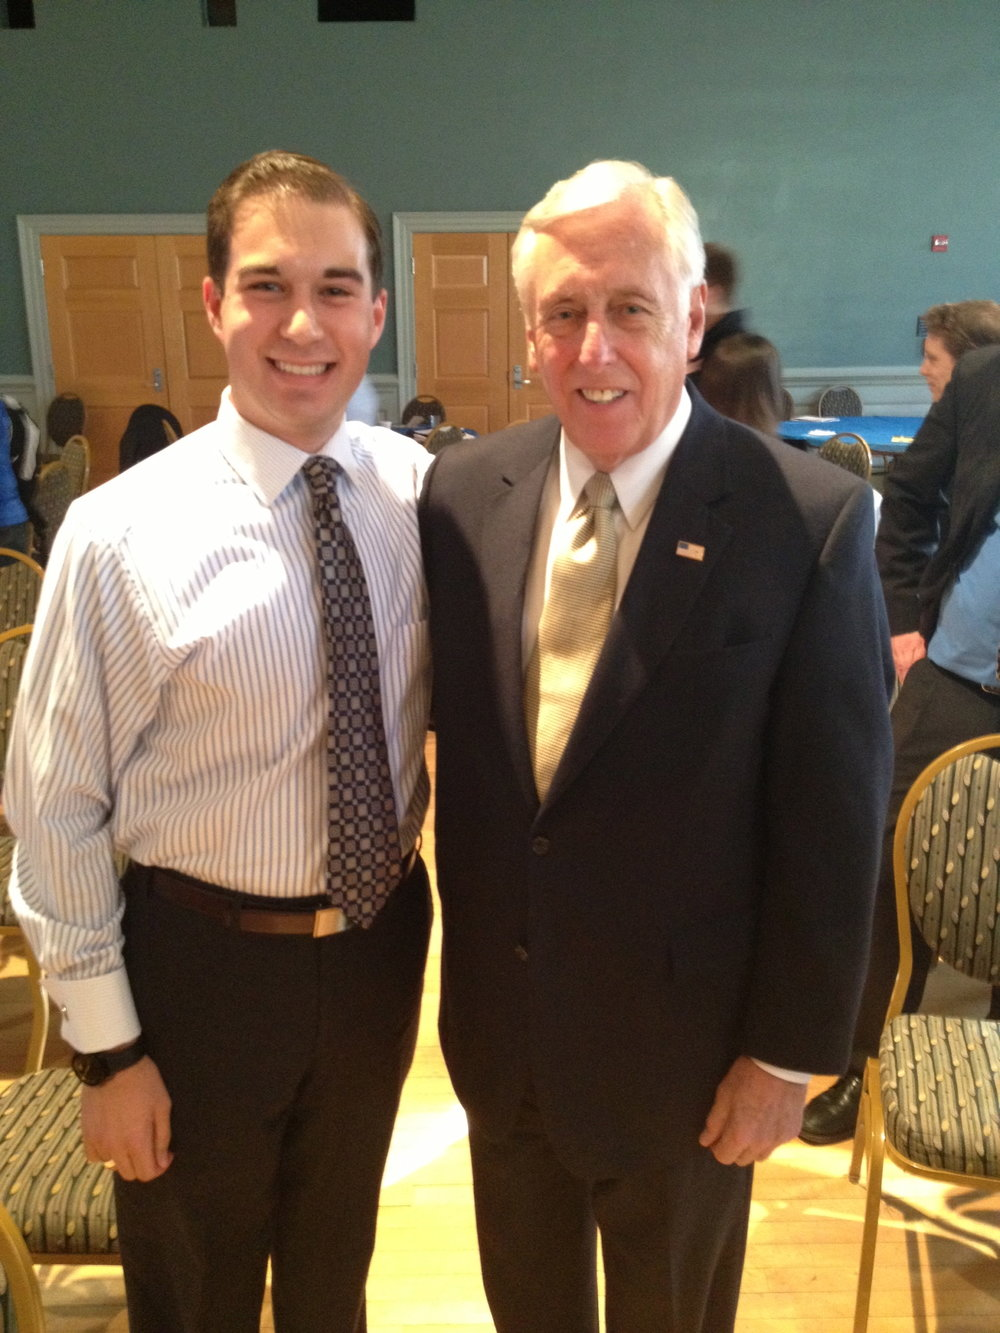 With former House Majority Leader Steny Hoyer (D-MD), February 2013